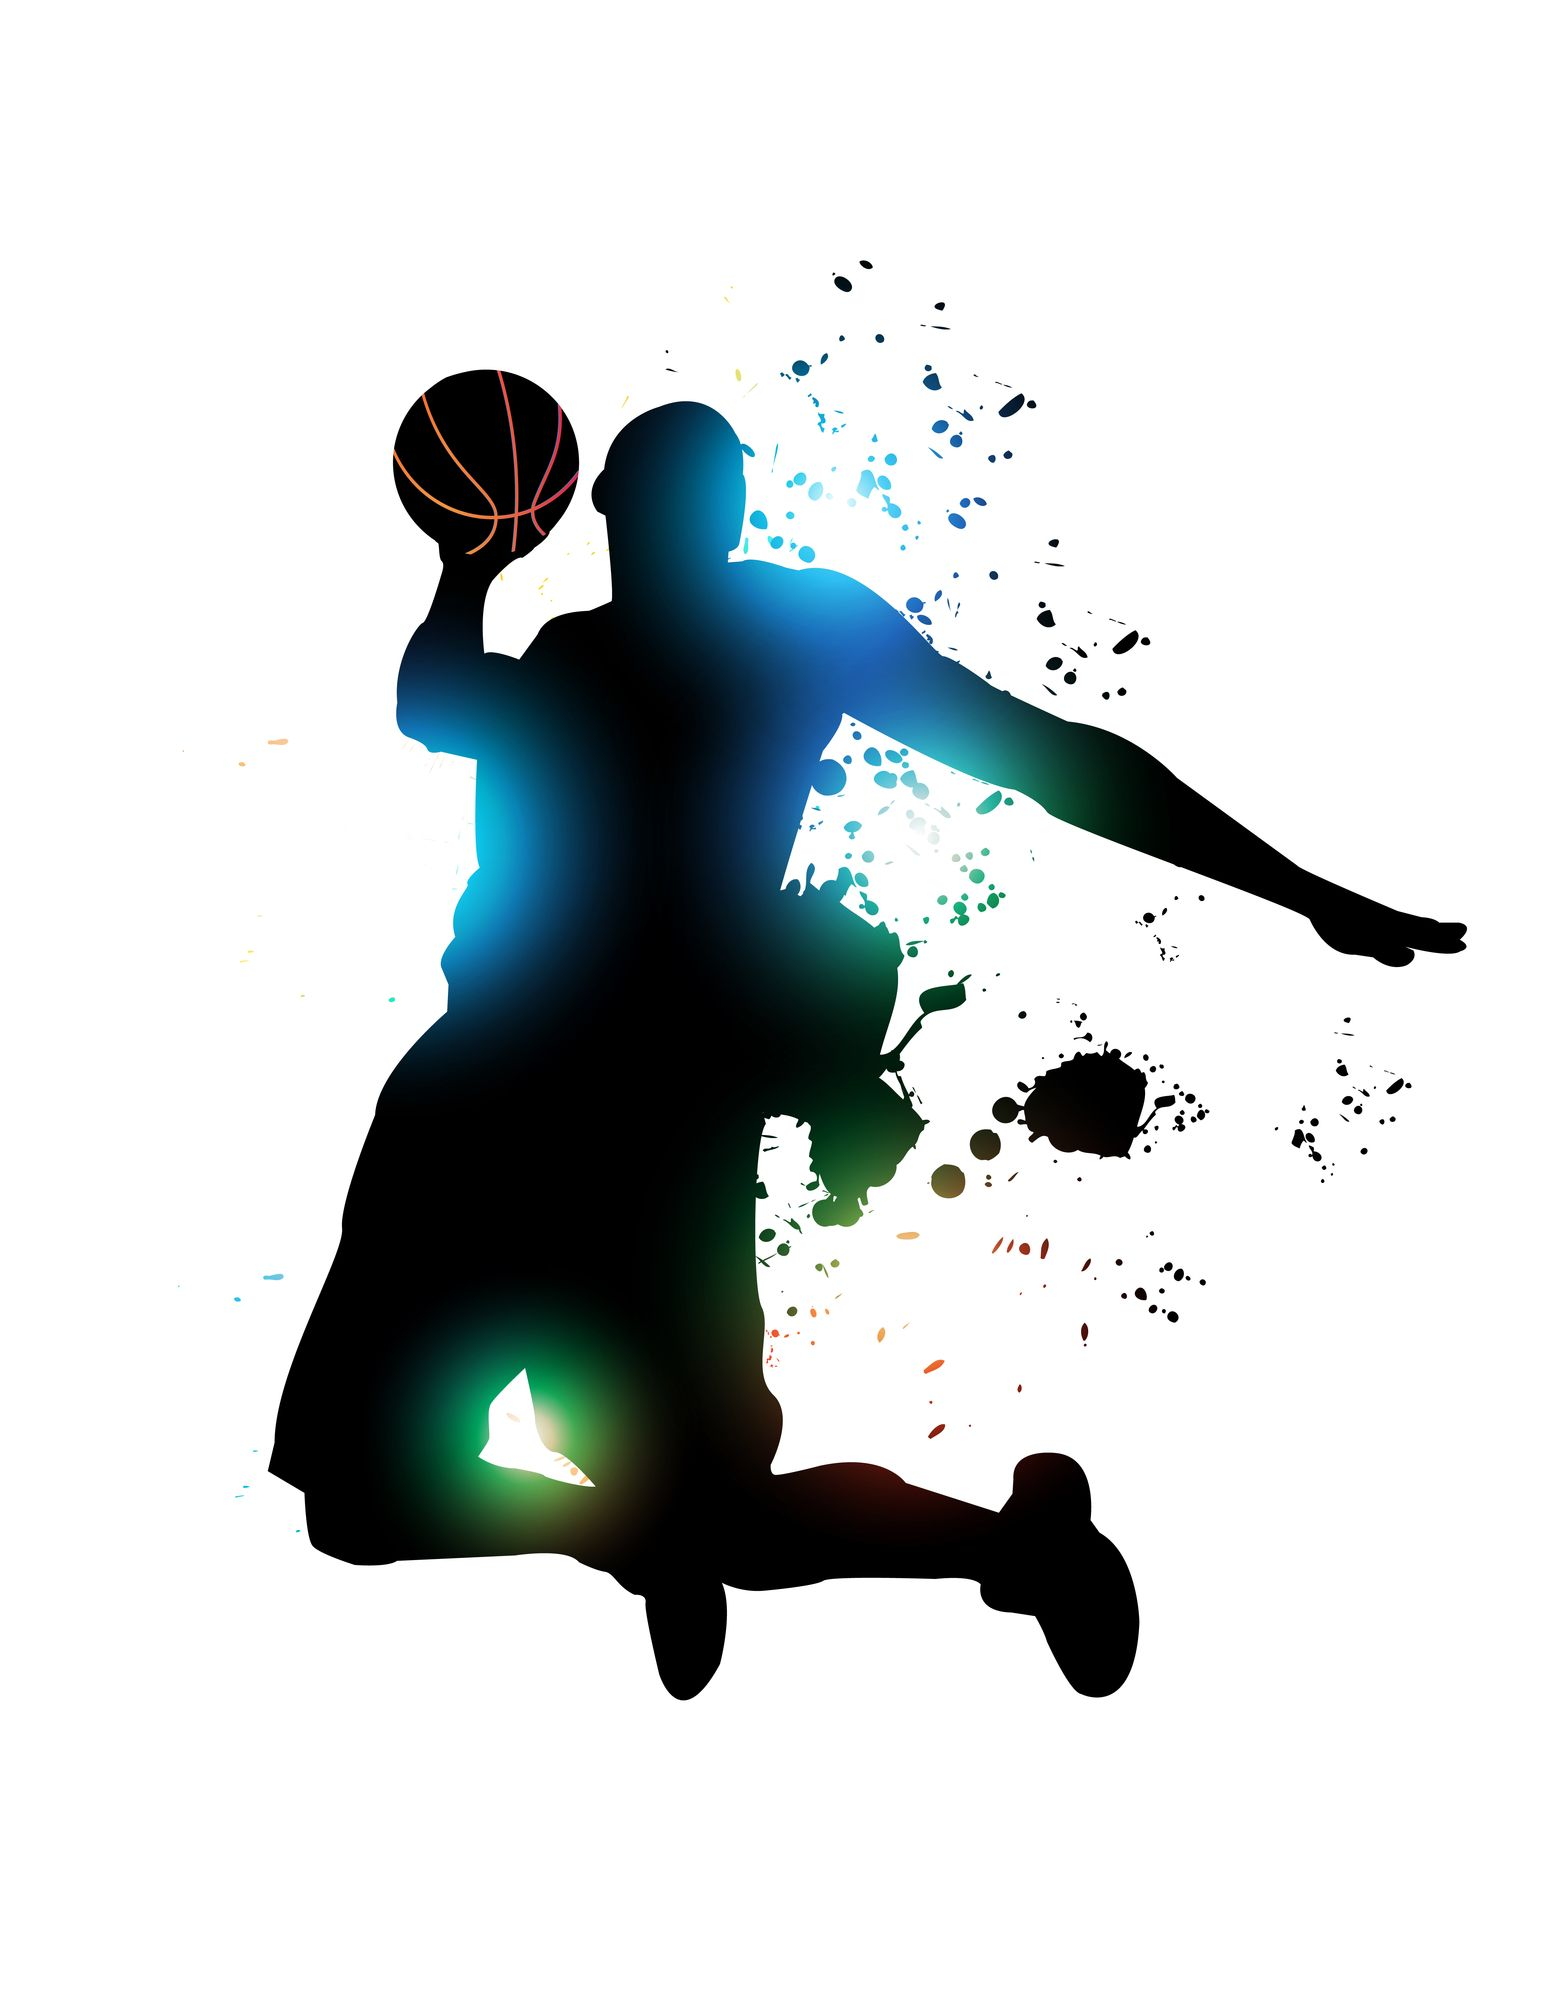 Abstract Basketball Player Vector Background Basketball Players Street Game Sports Video Game